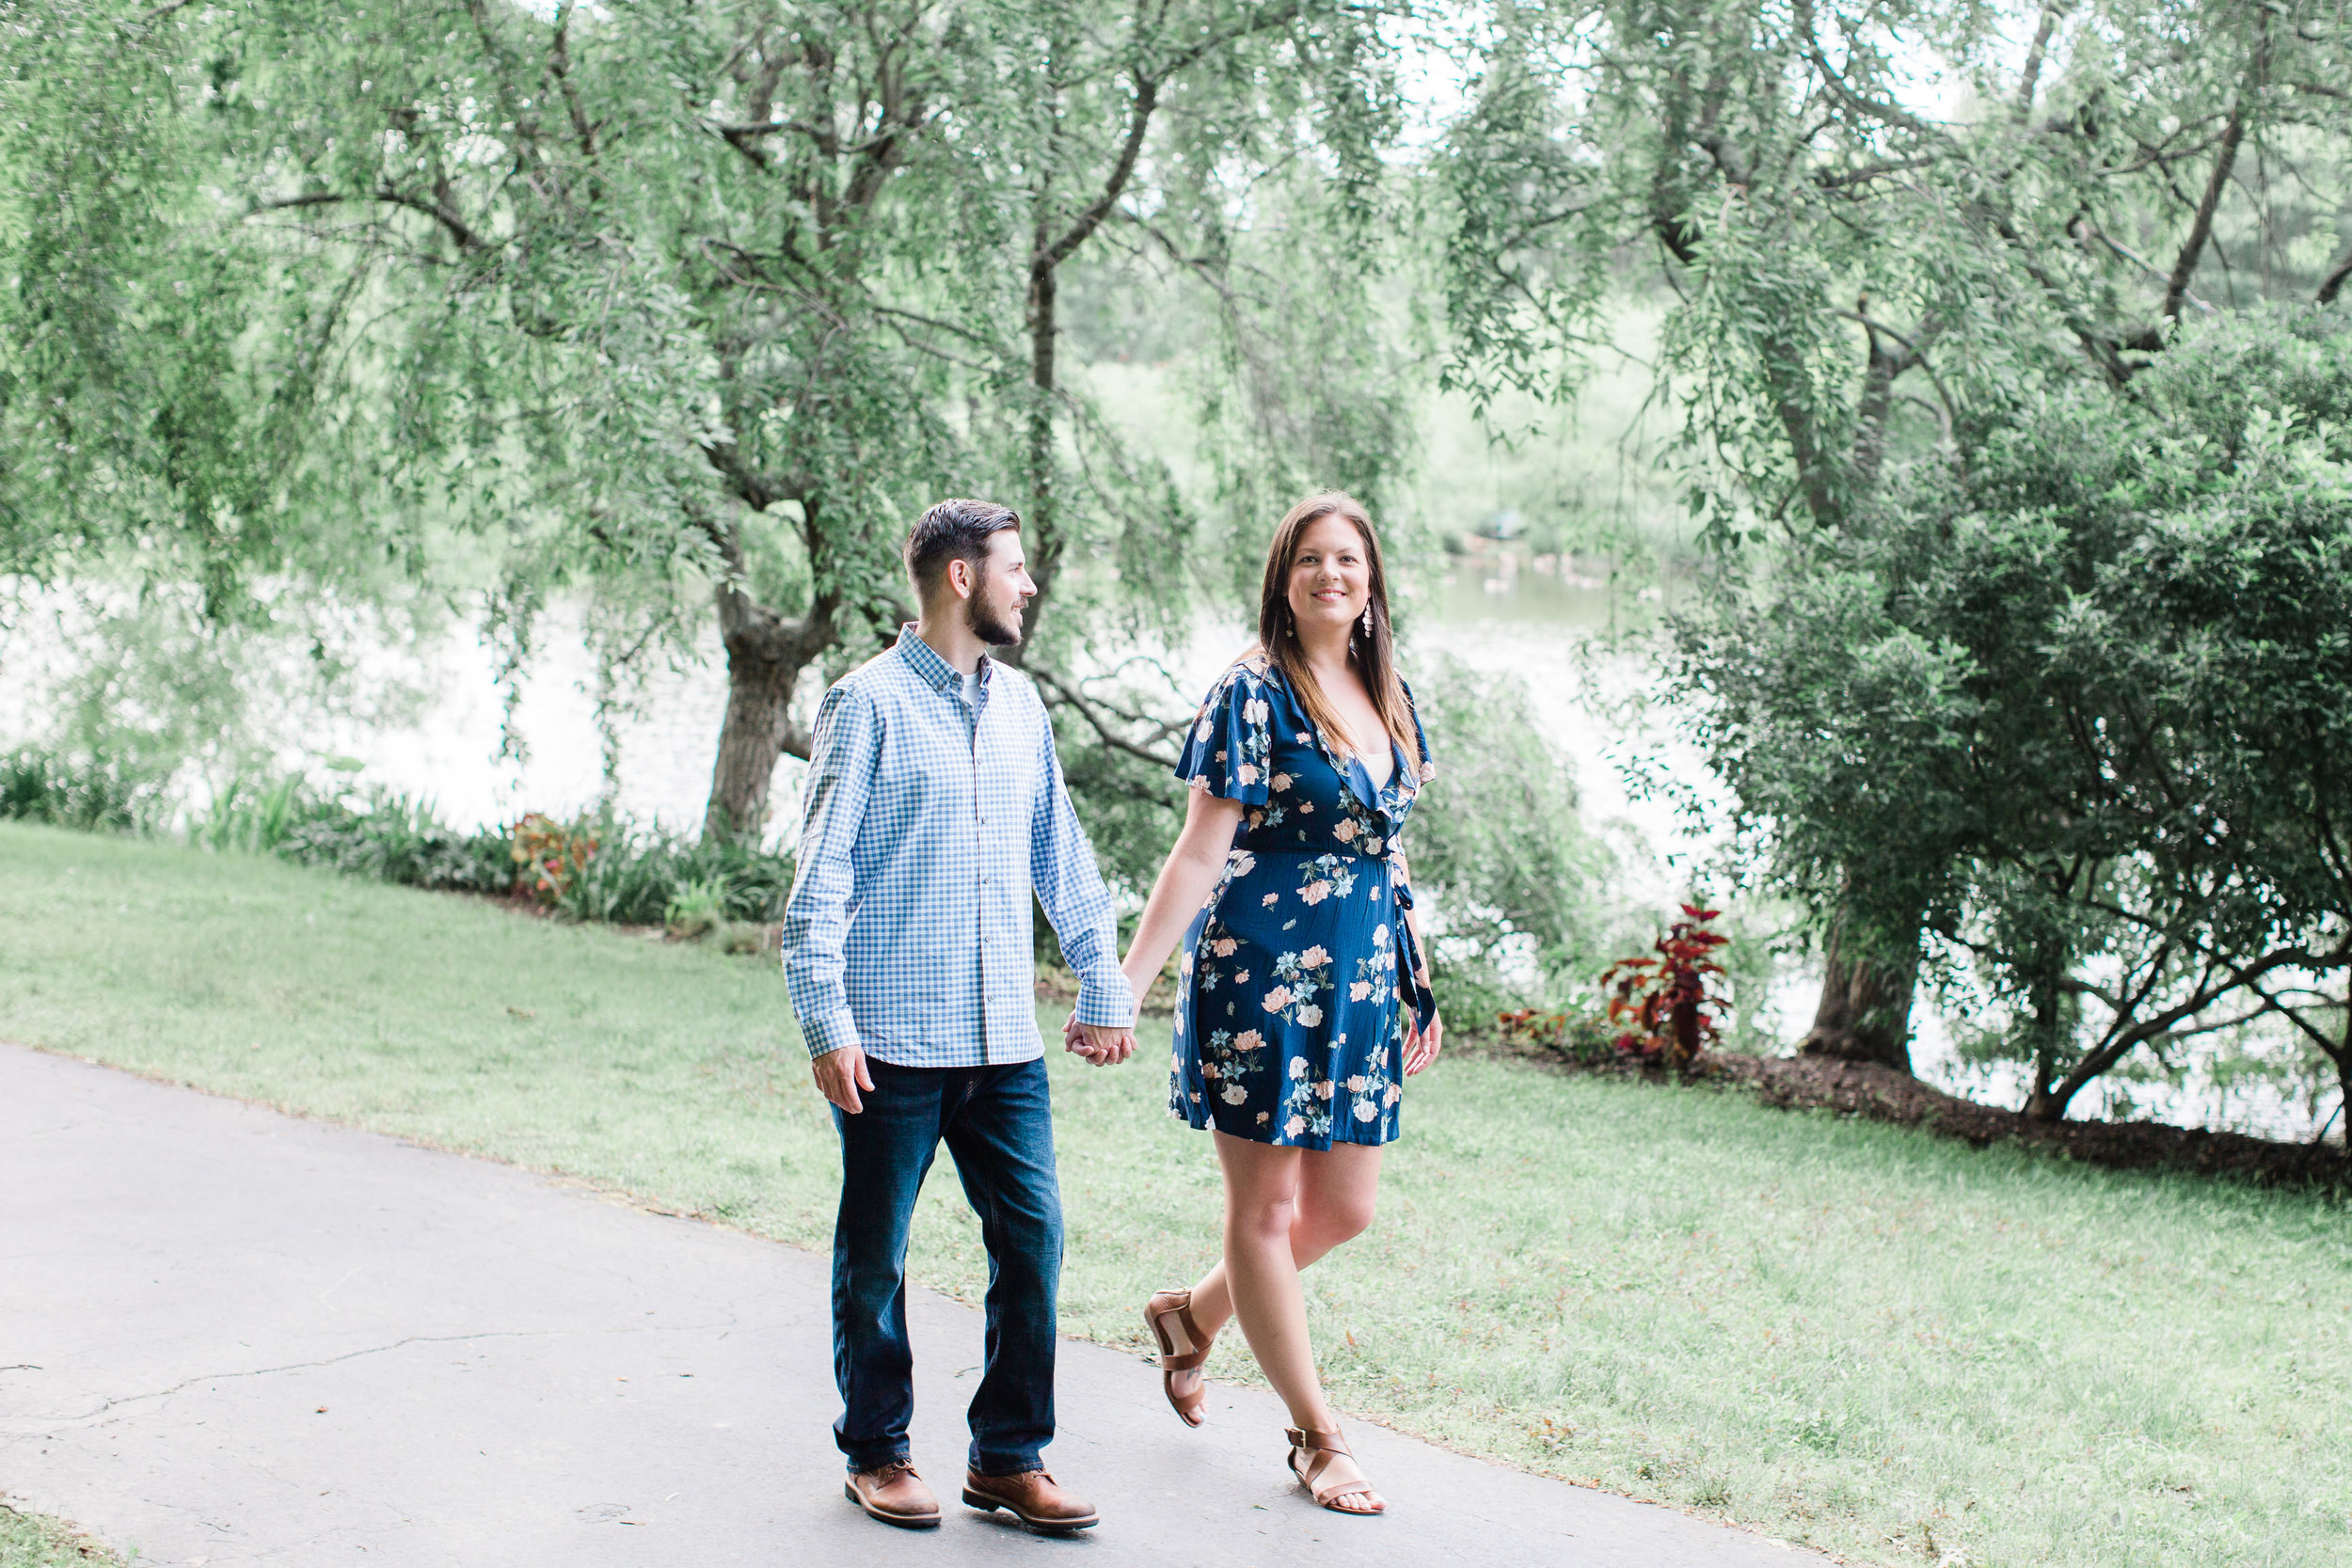 meadowlark_botanical_gardens_engagements-6527.jpg